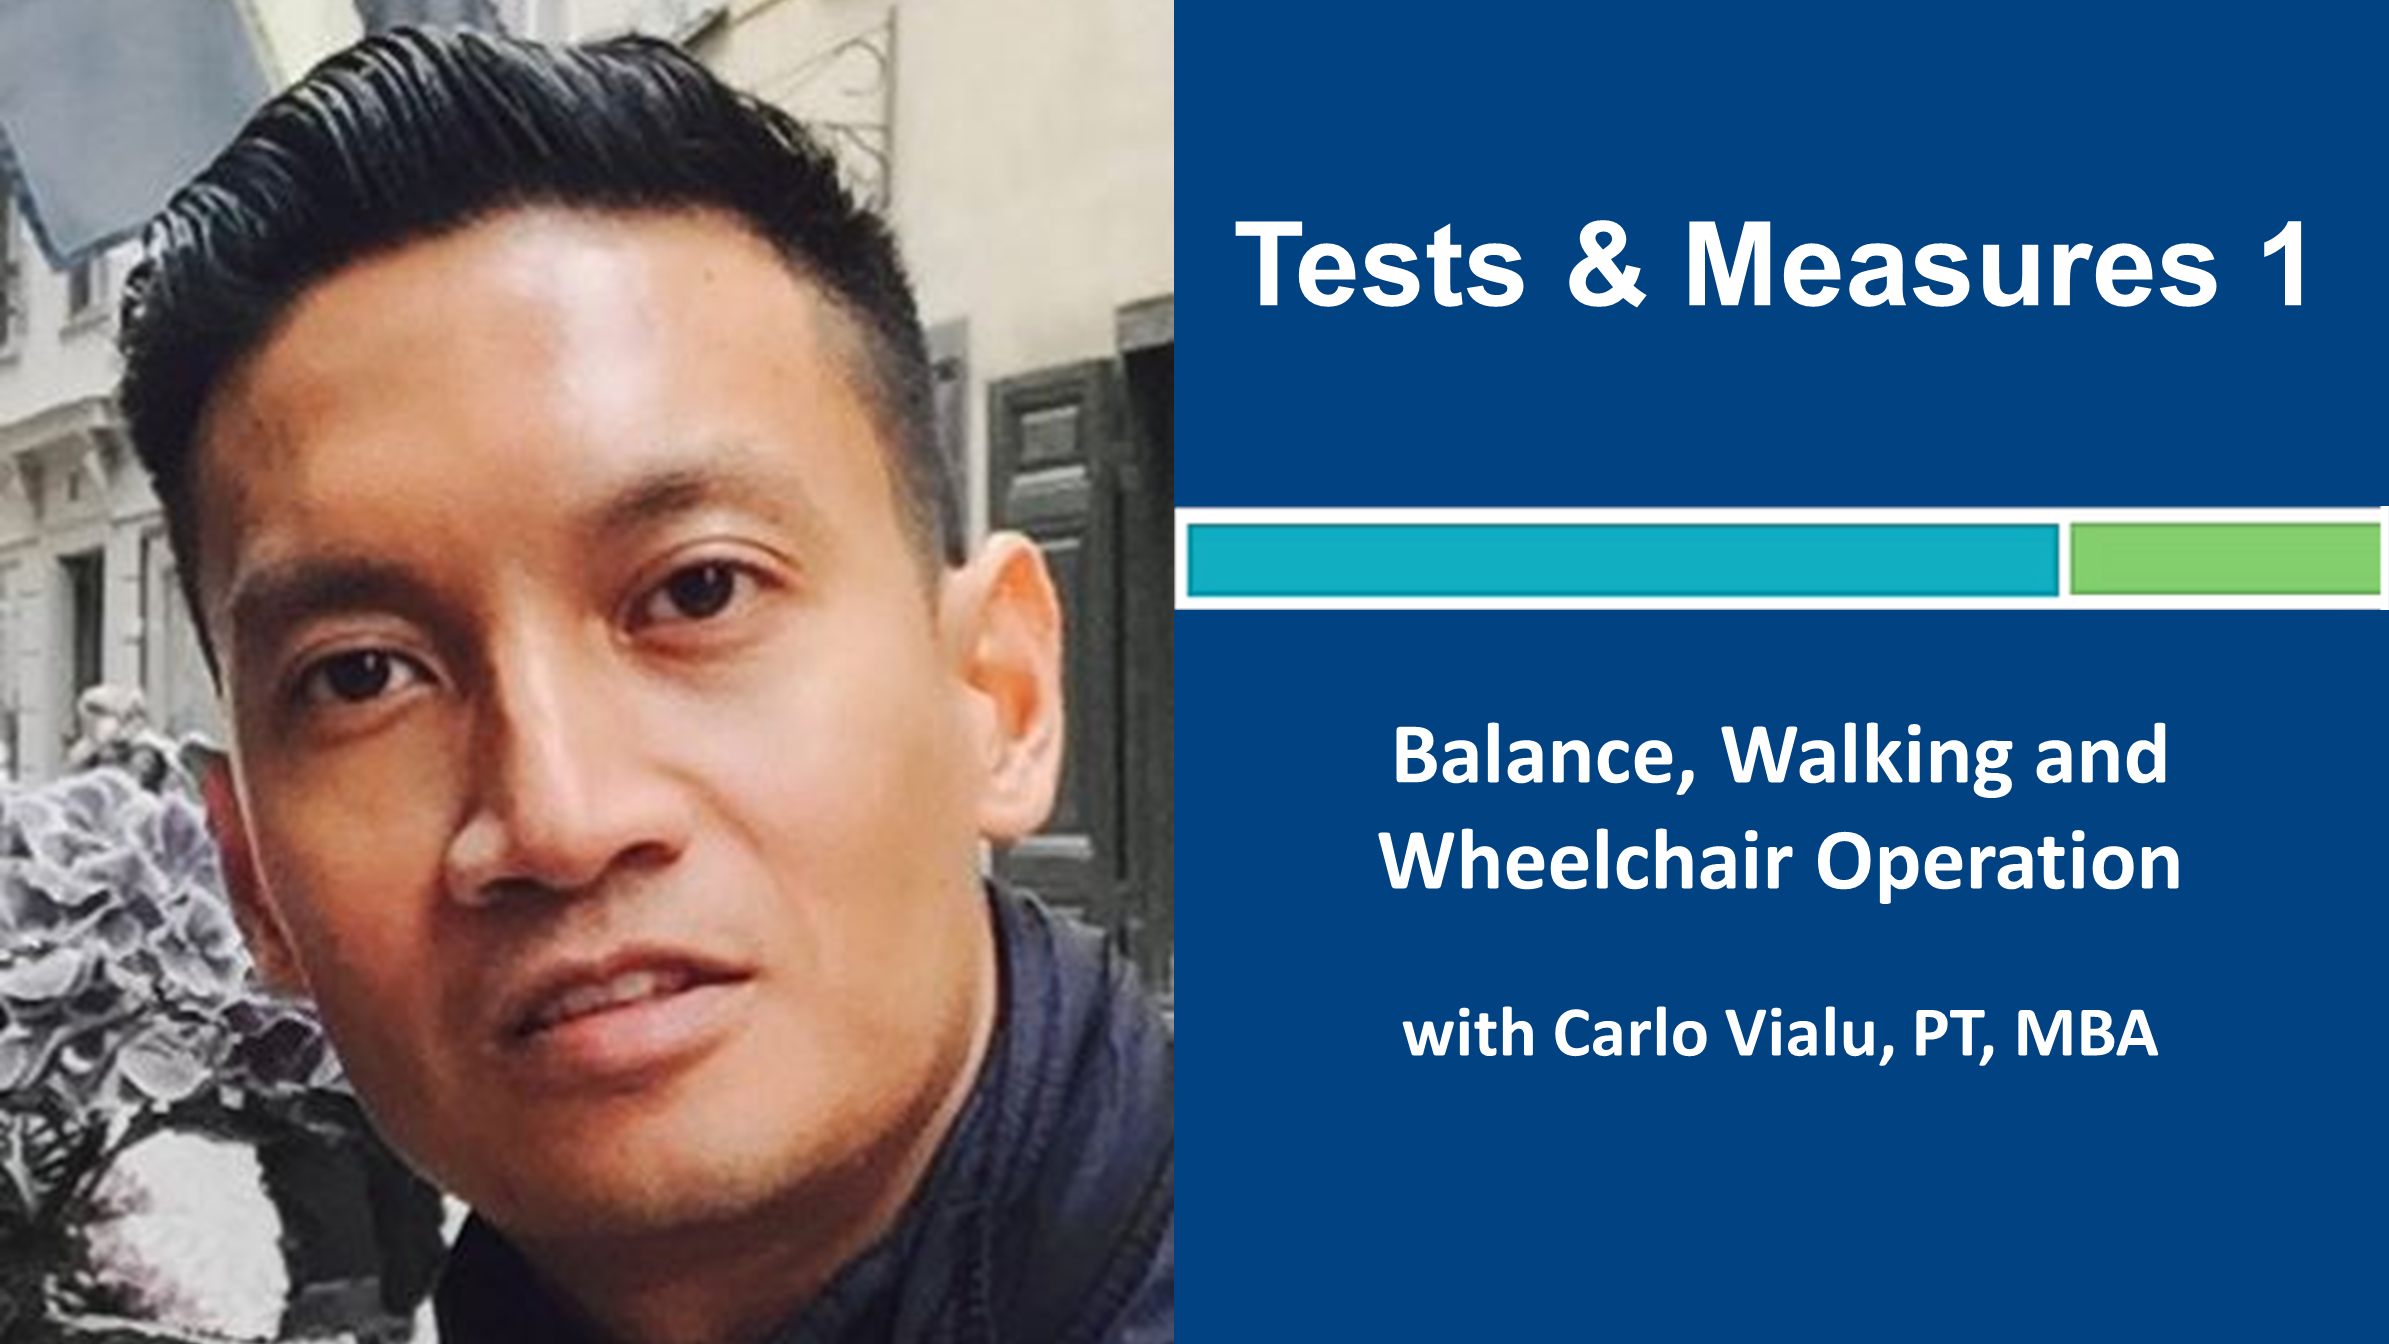 Webinar 6: Tests and Measures 1 - Balance, Mobility and Wheelchair Operation with Carlo Vialu, PT, MBA